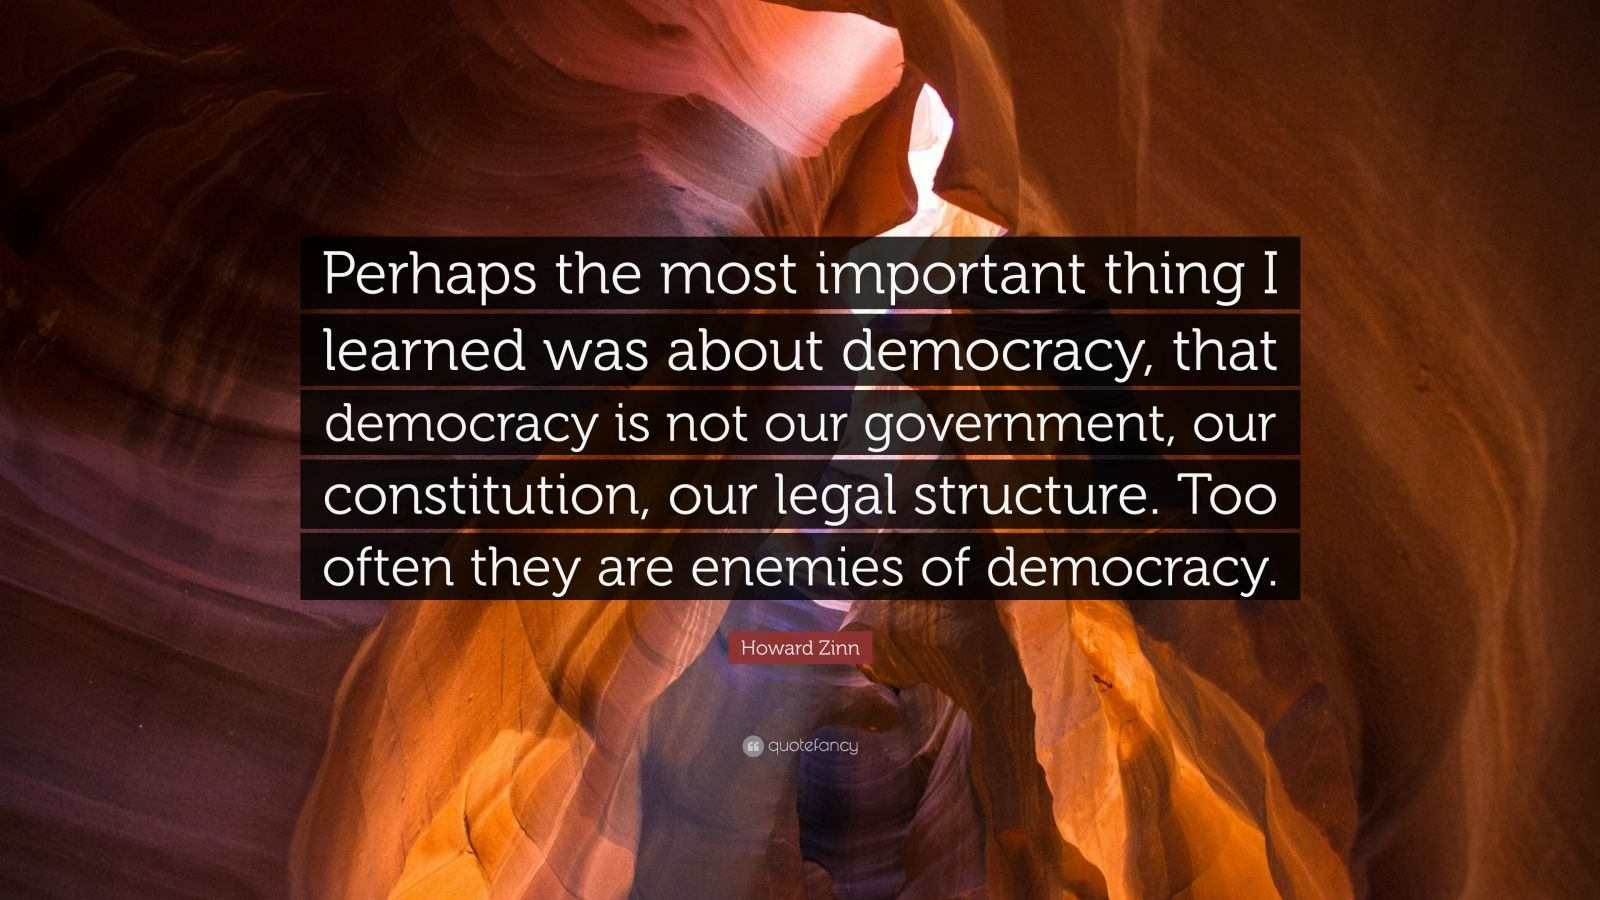 """Howard Zinn Quote: """"Perhaps the most important thing I learned was about democracy, that democracy is not our government, our constitution, our legal structure. Too often they are enemies of democracy."""""""